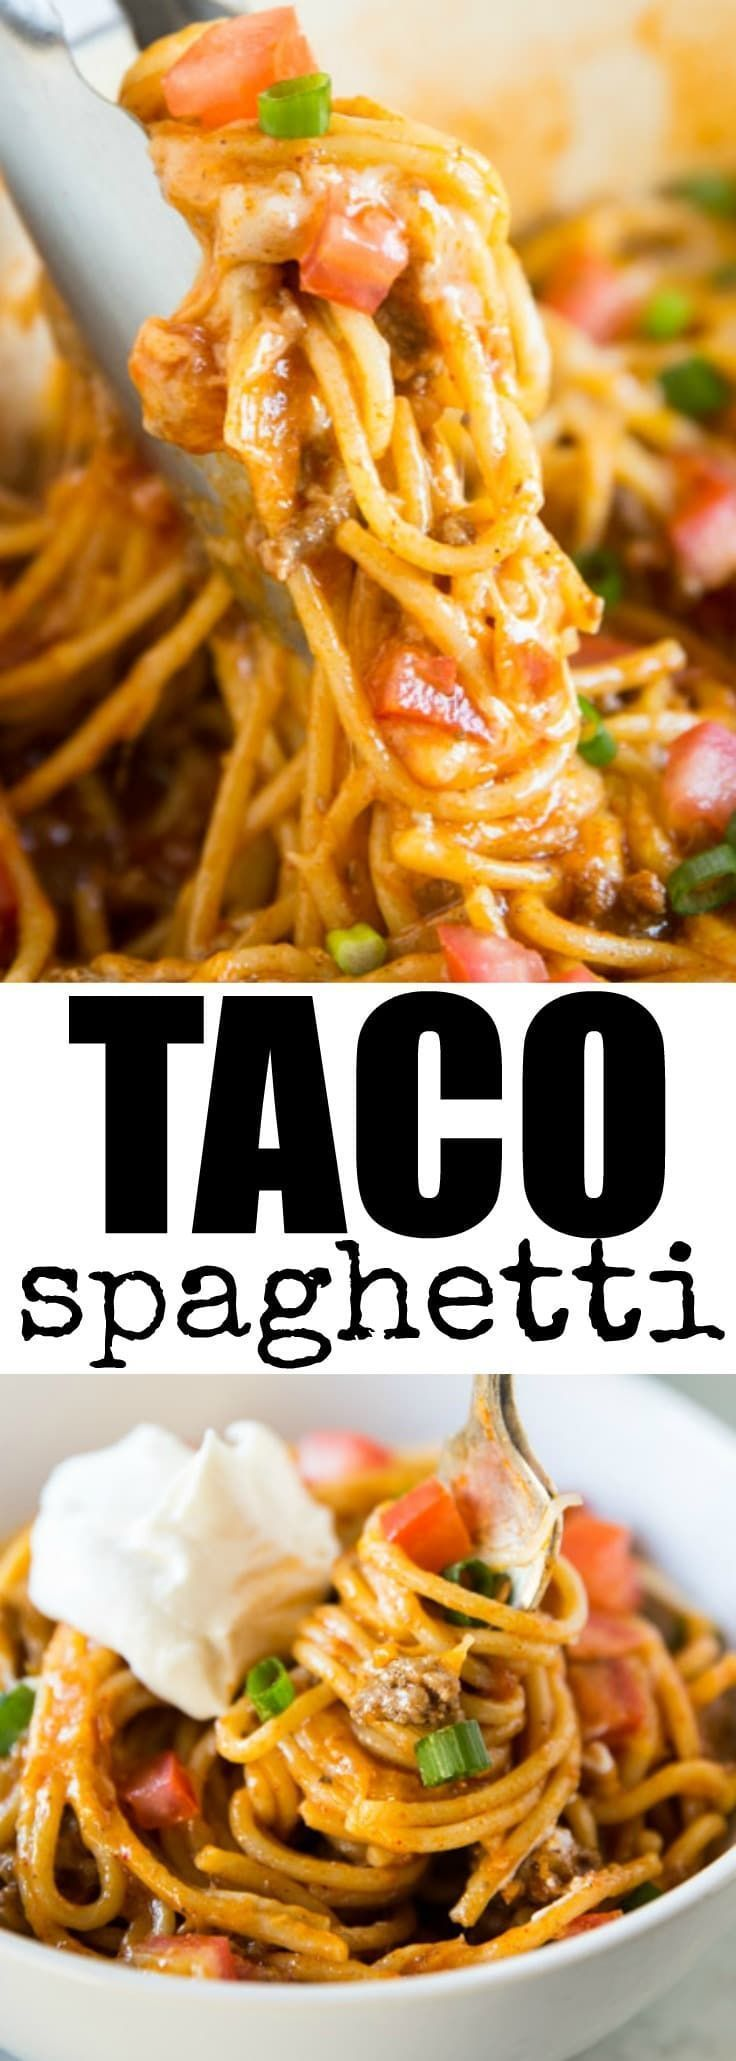 One Pot Taco Spaghetti Recipe | Culinary Hill